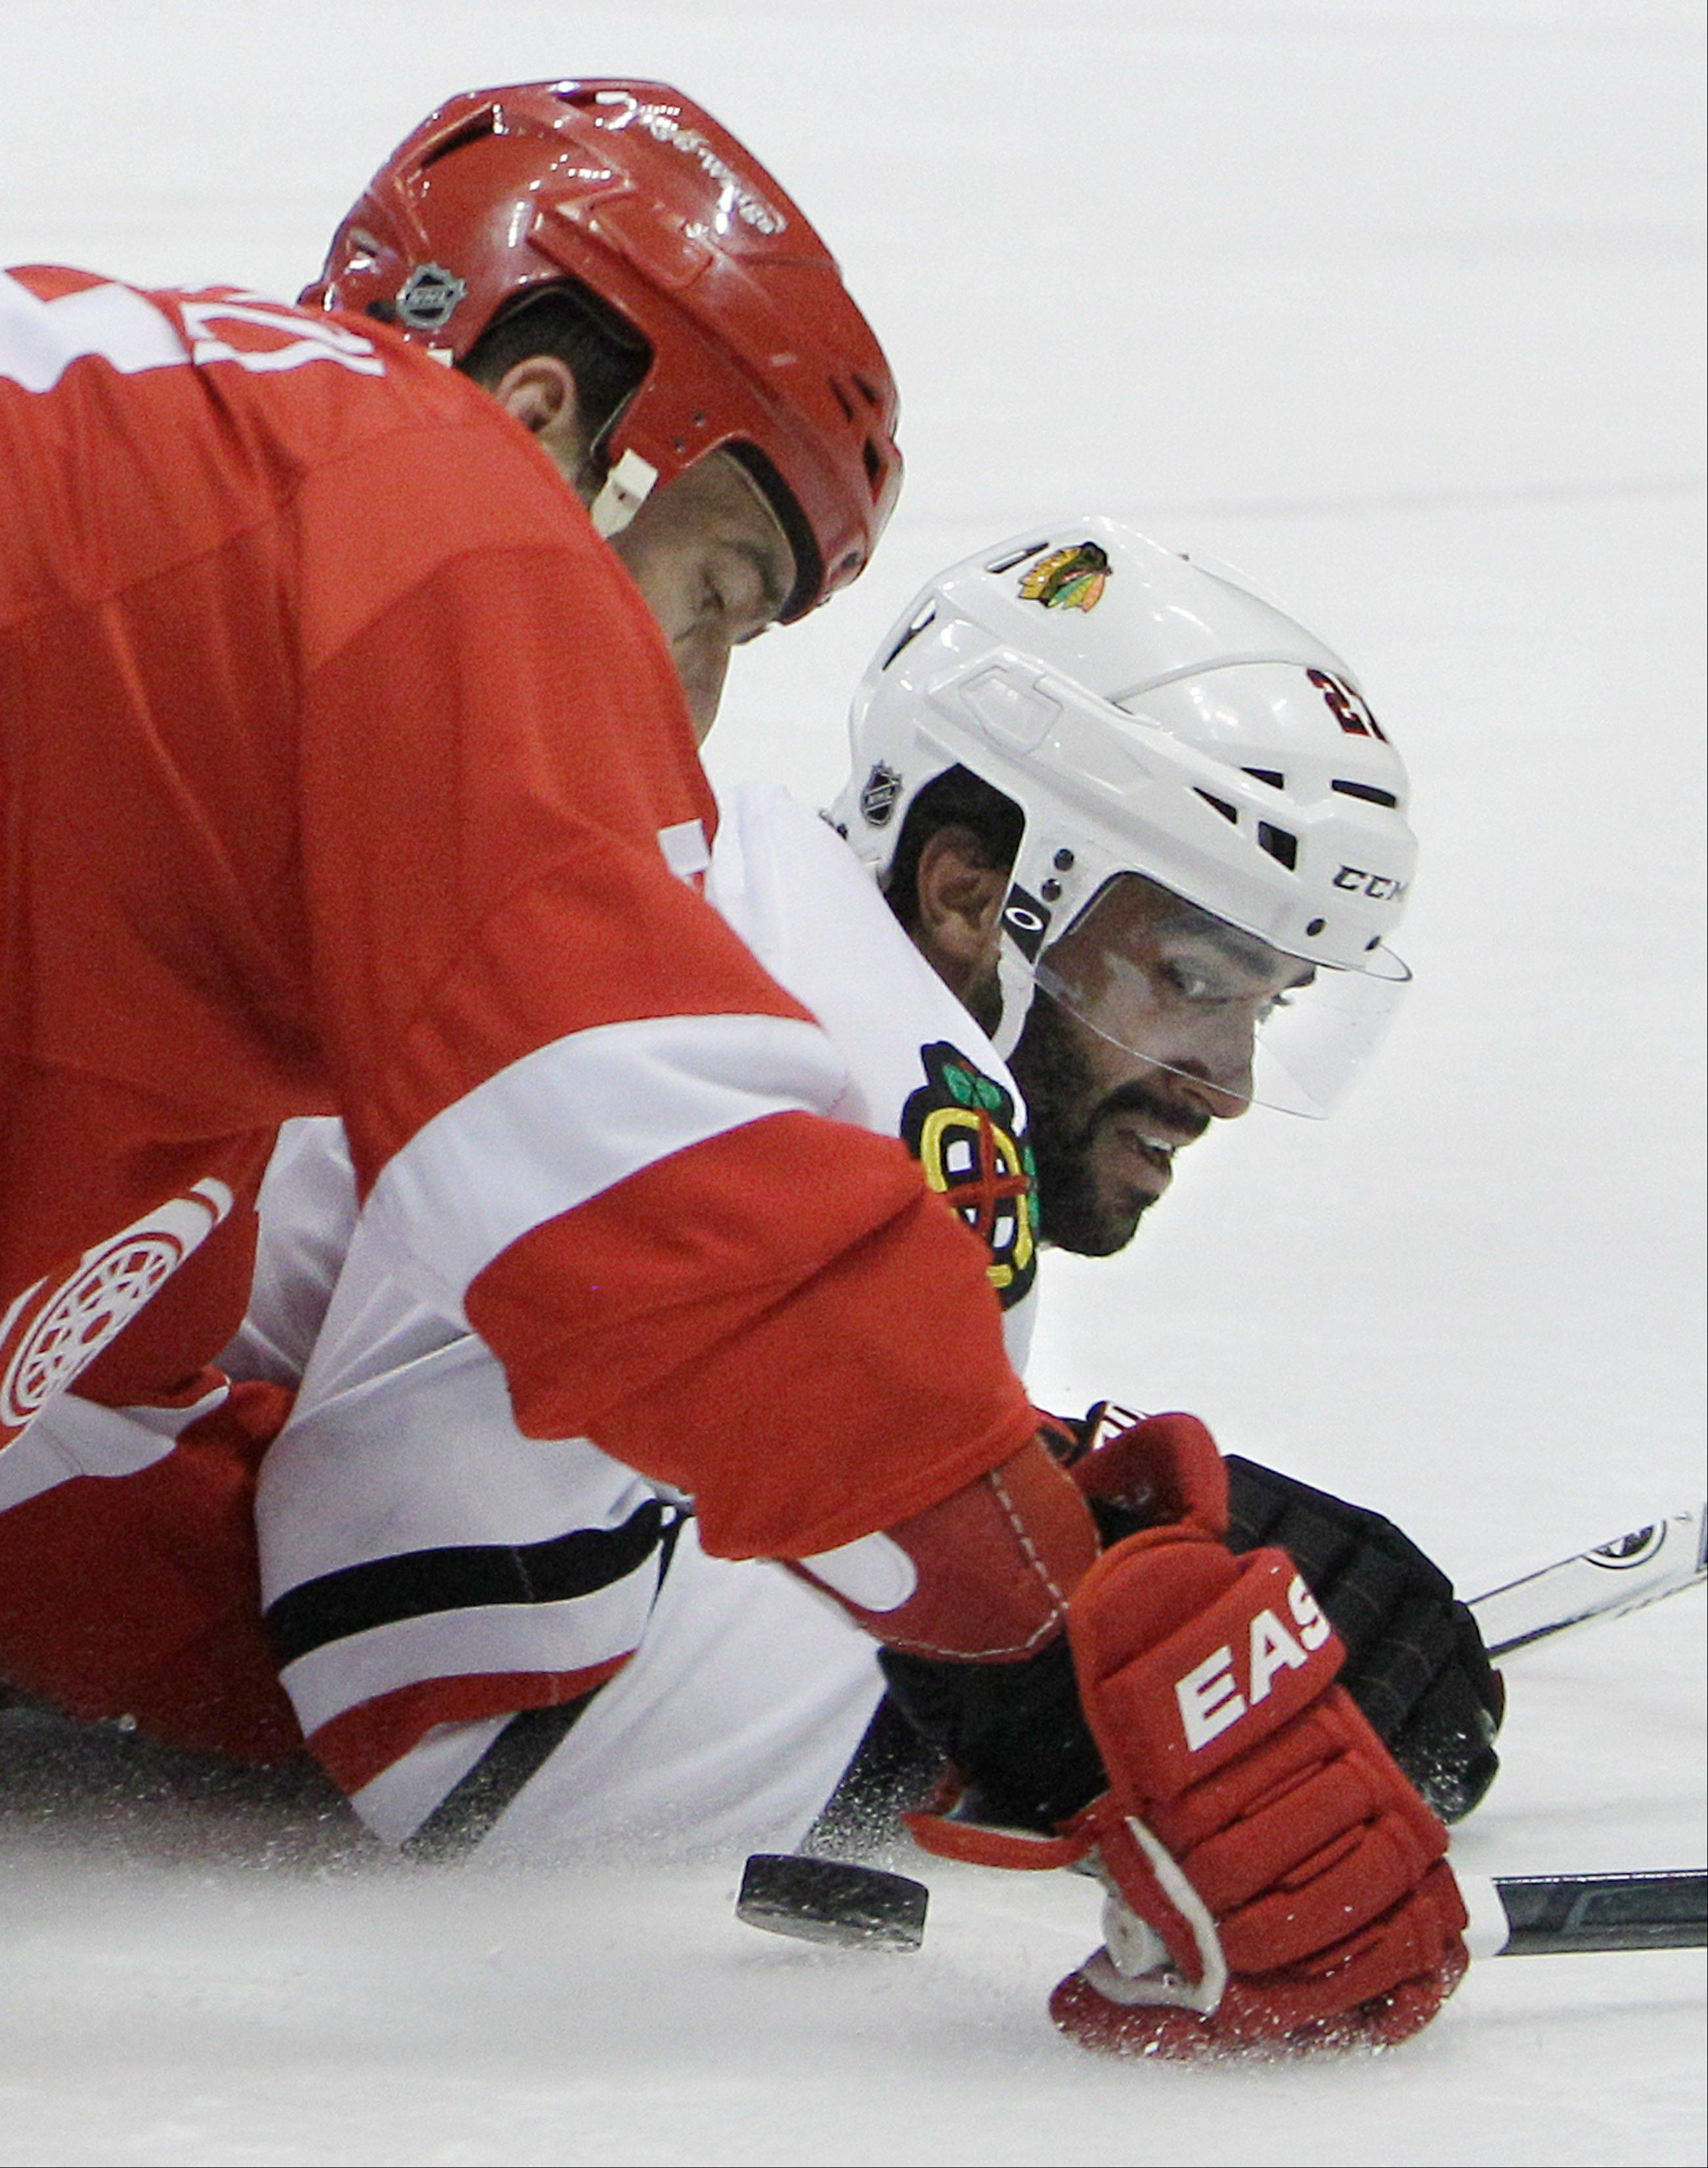 Detroit Red Wings right wing Todd Bertuzzi (44) and Chicago Blackhawks defenseman Johnny Oduya (27) of Sweden eye the puck during the third period of an NHL hockey game in Detroit, Sunday, March 4, 2012. (AP Photo/Carlos Osorio)